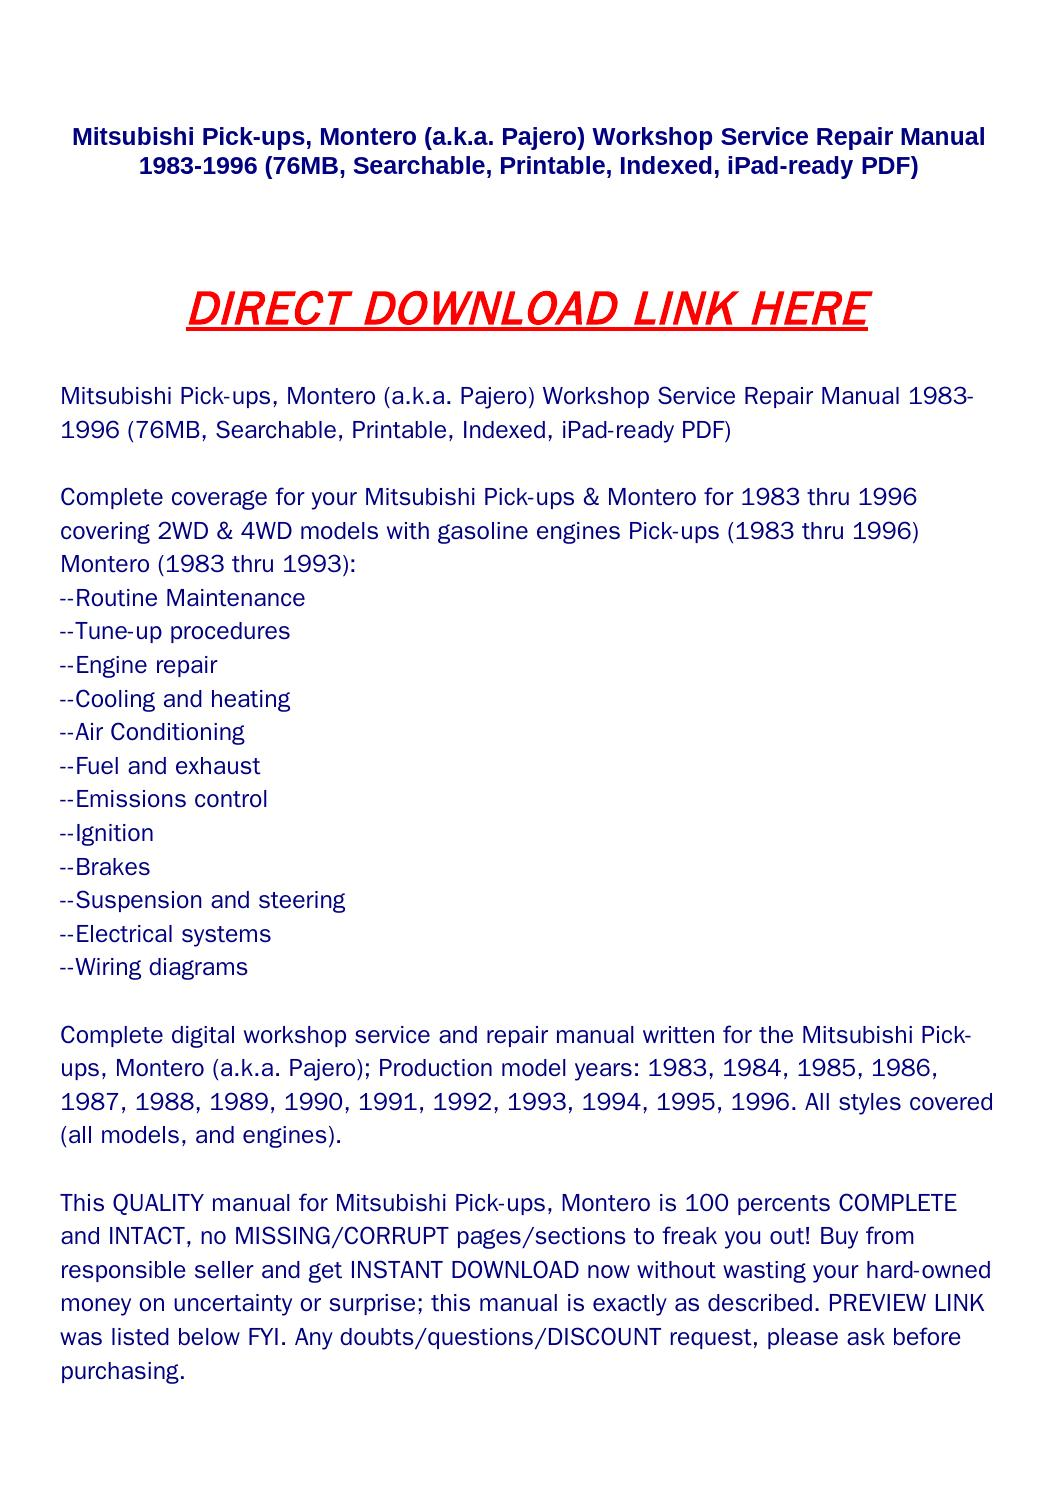 Mitsubishi pick ups, montero (a k a pajero) workshop service repair manual  1983 1996 (76mb, searchab by rock-pagelarge.com - issuu